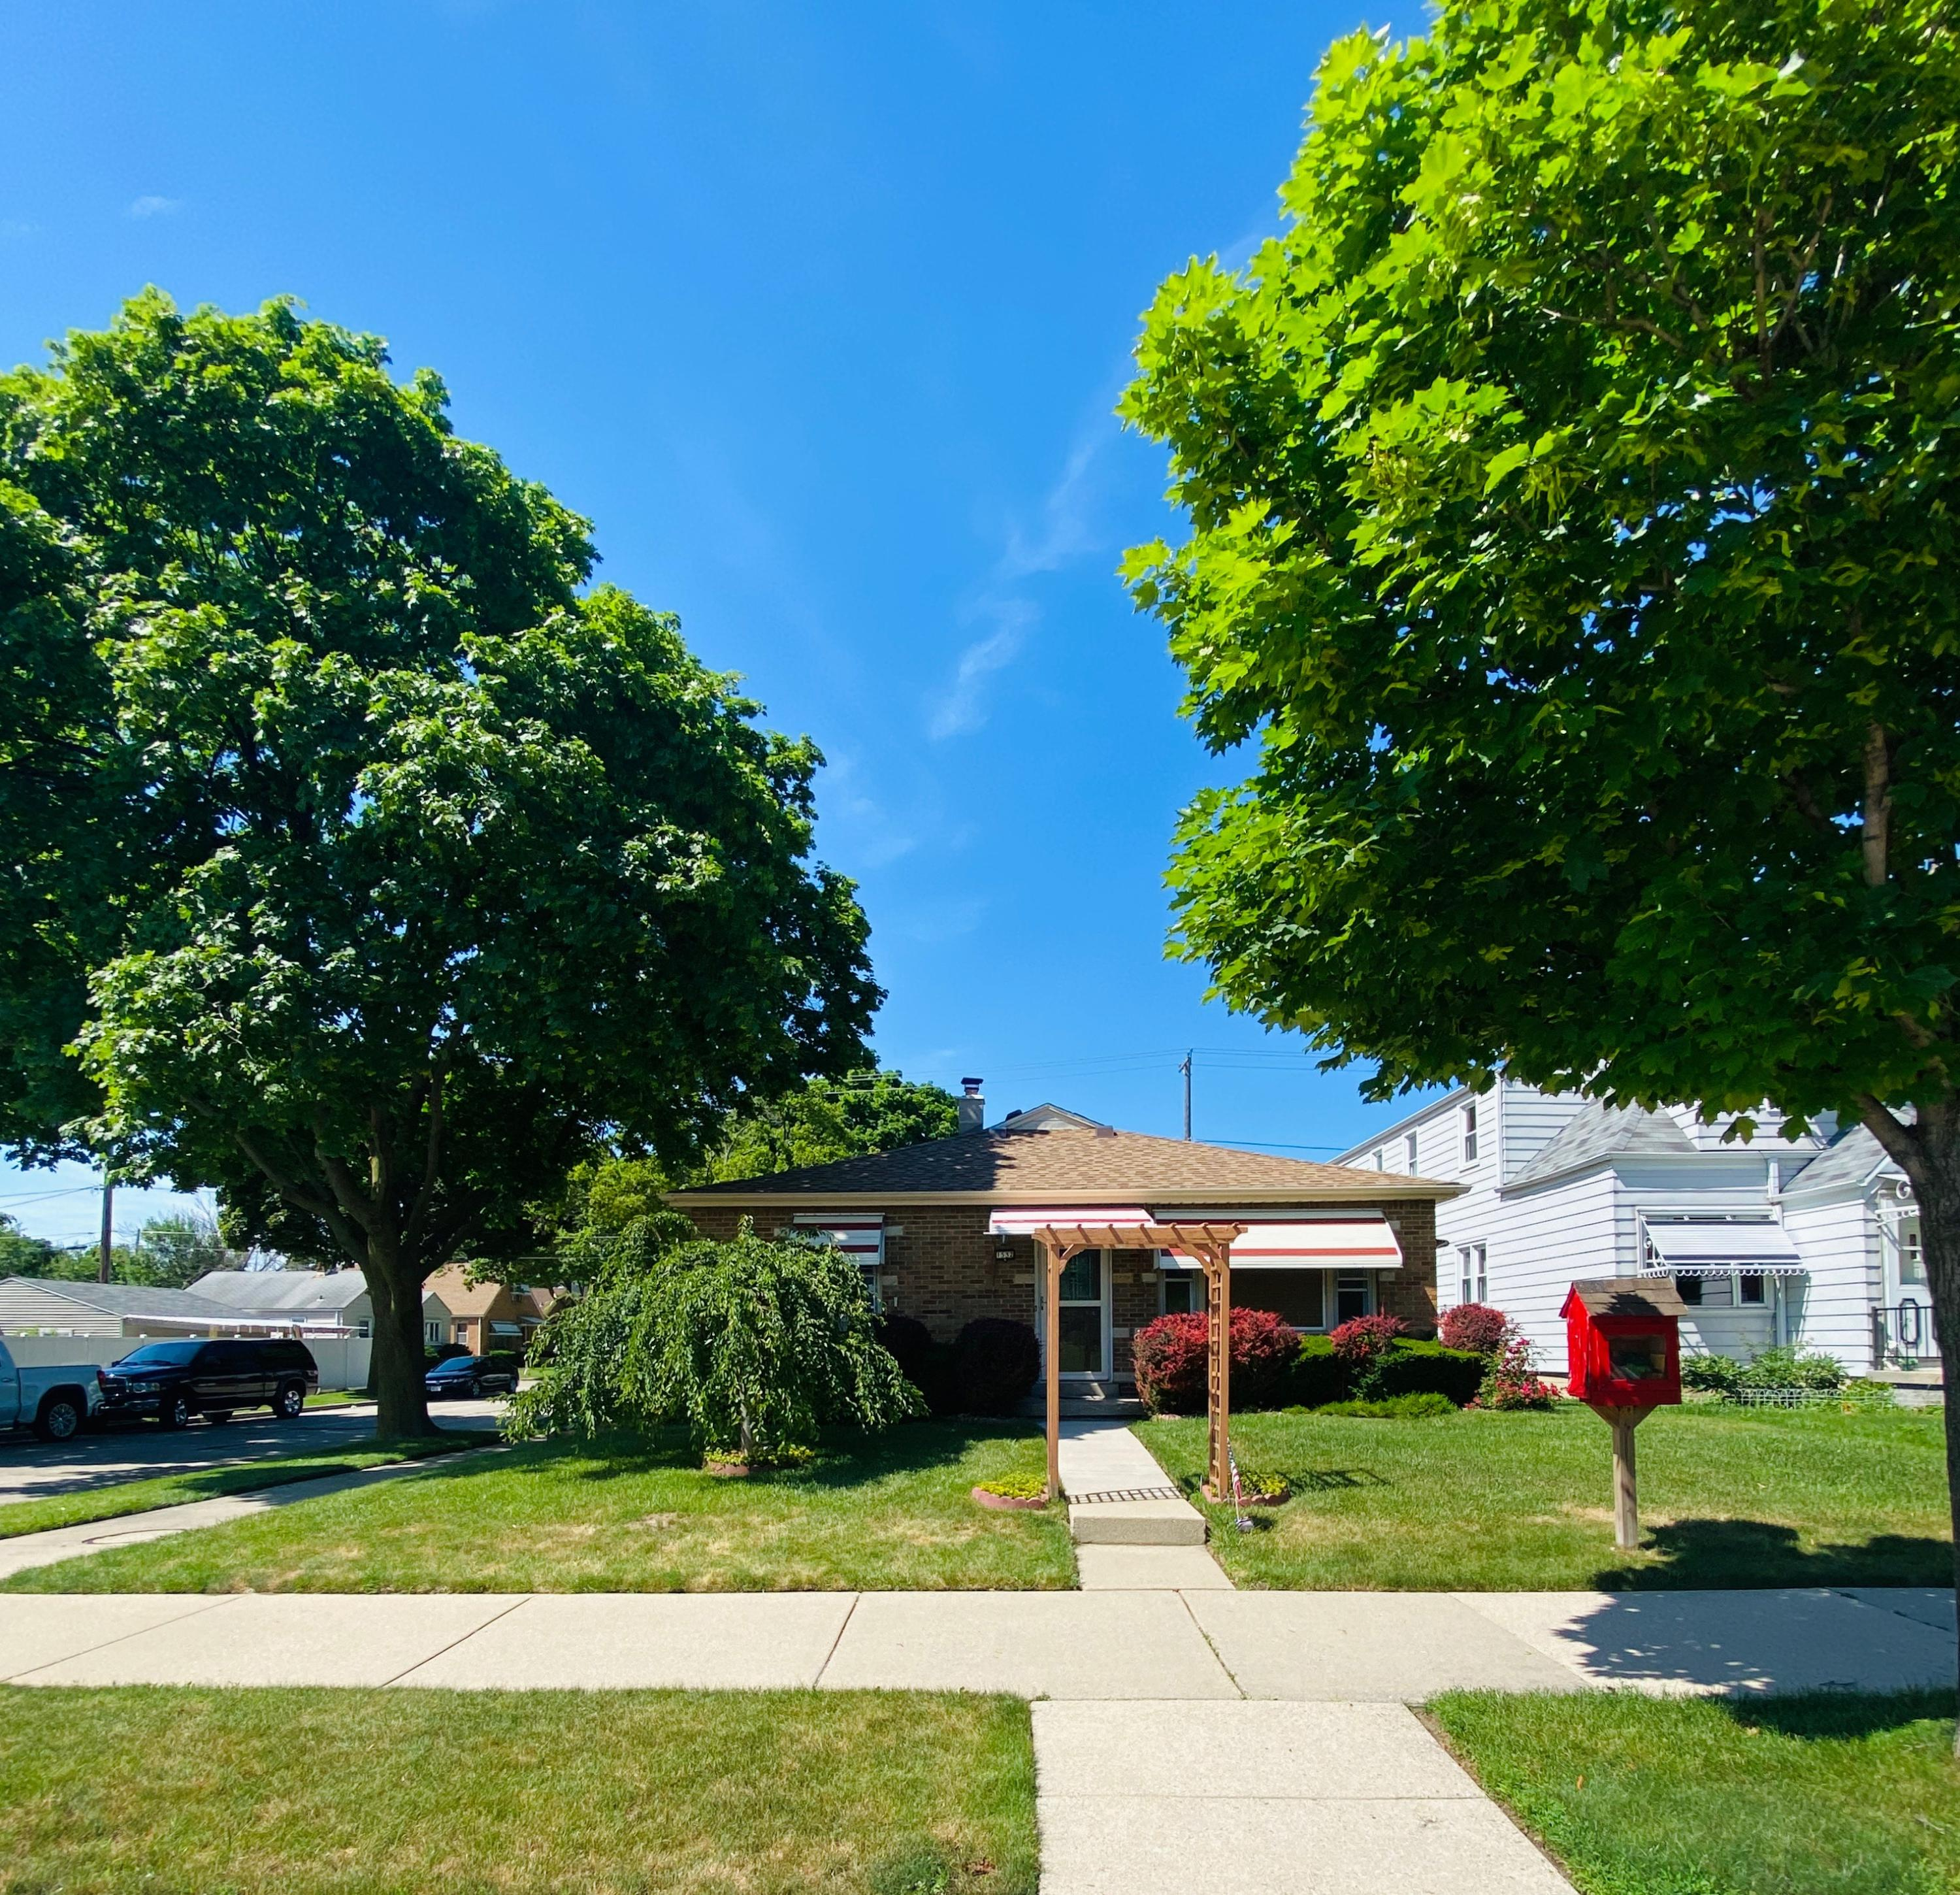 1532 Howard Ave, Milwaukee, Wisconsin 53221, 3 Bedrooms Bedrooms, 5 Rooms Rooms,1 BathroomBathrooms,Single-Family,For Sale,Howard Ave,1696857